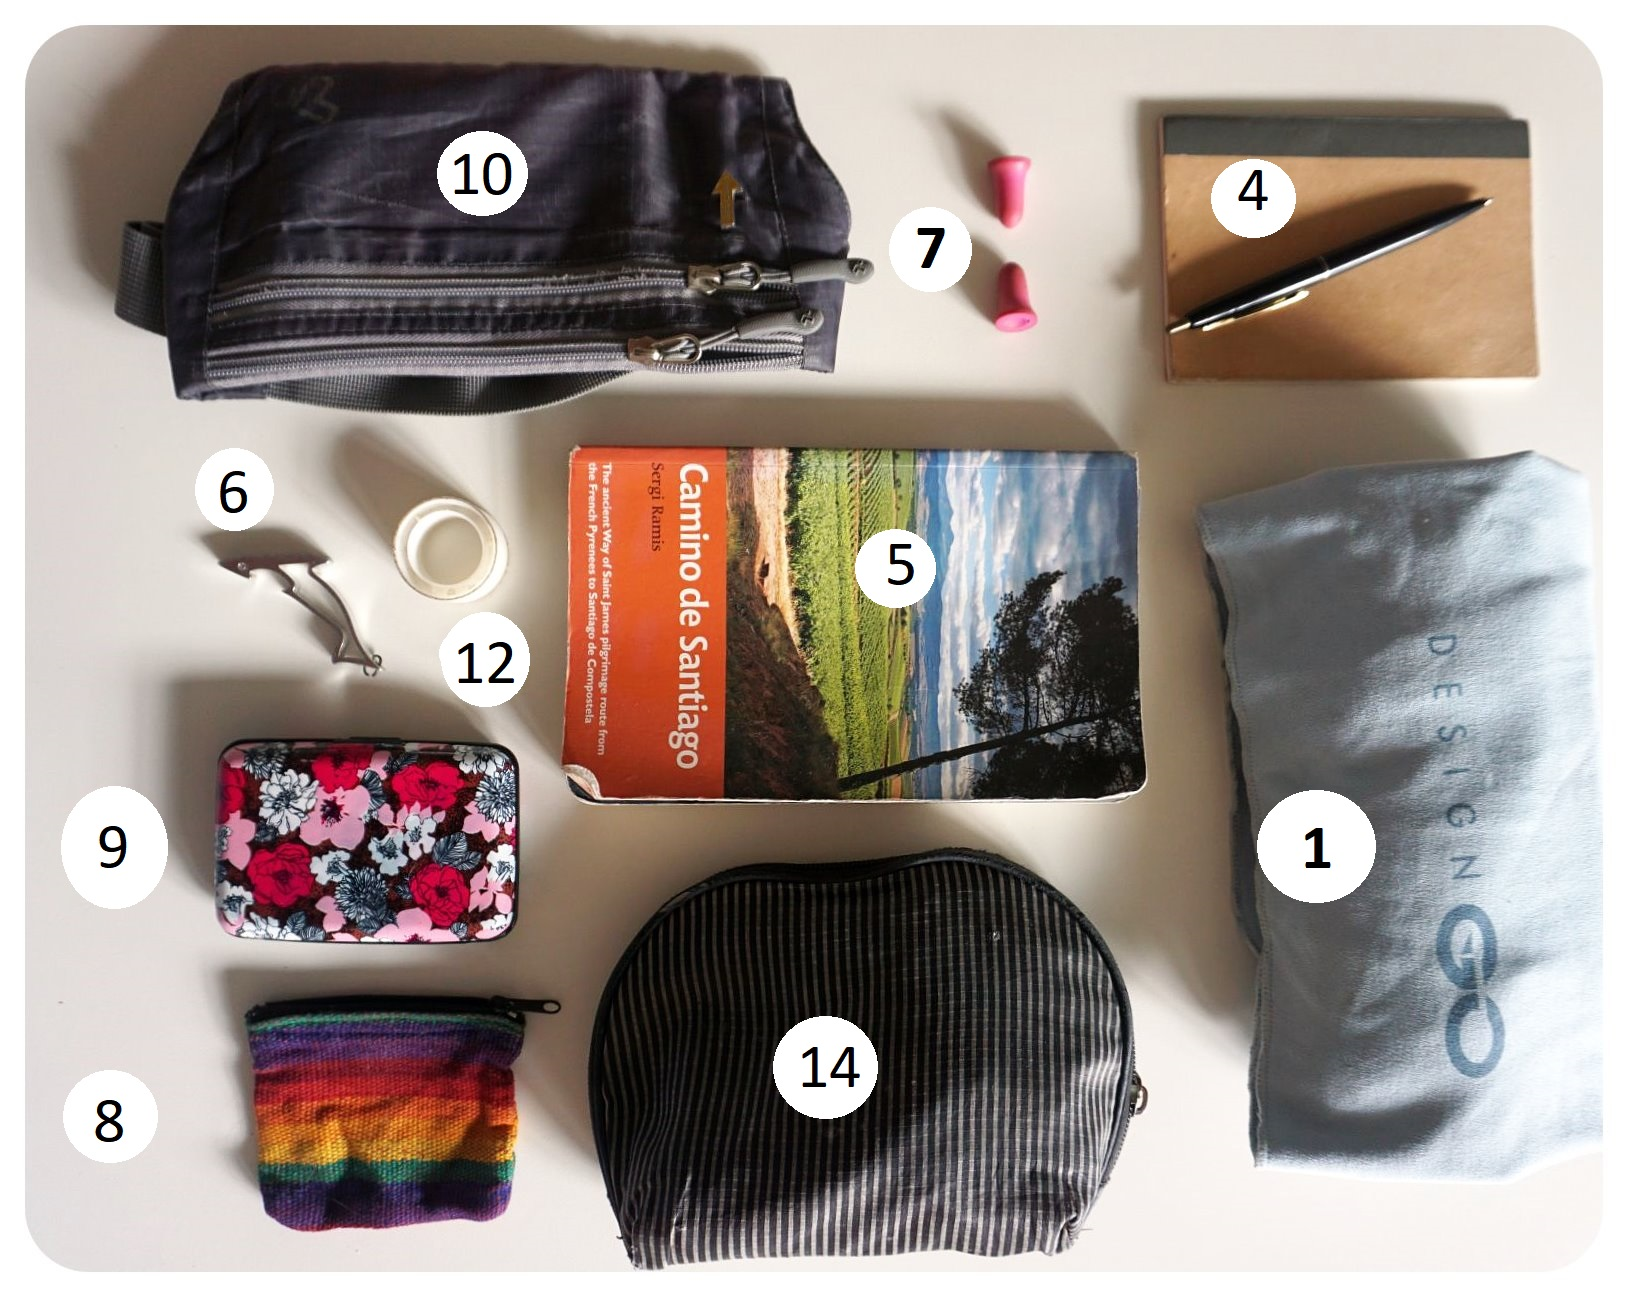 camino de santiago packing list random items